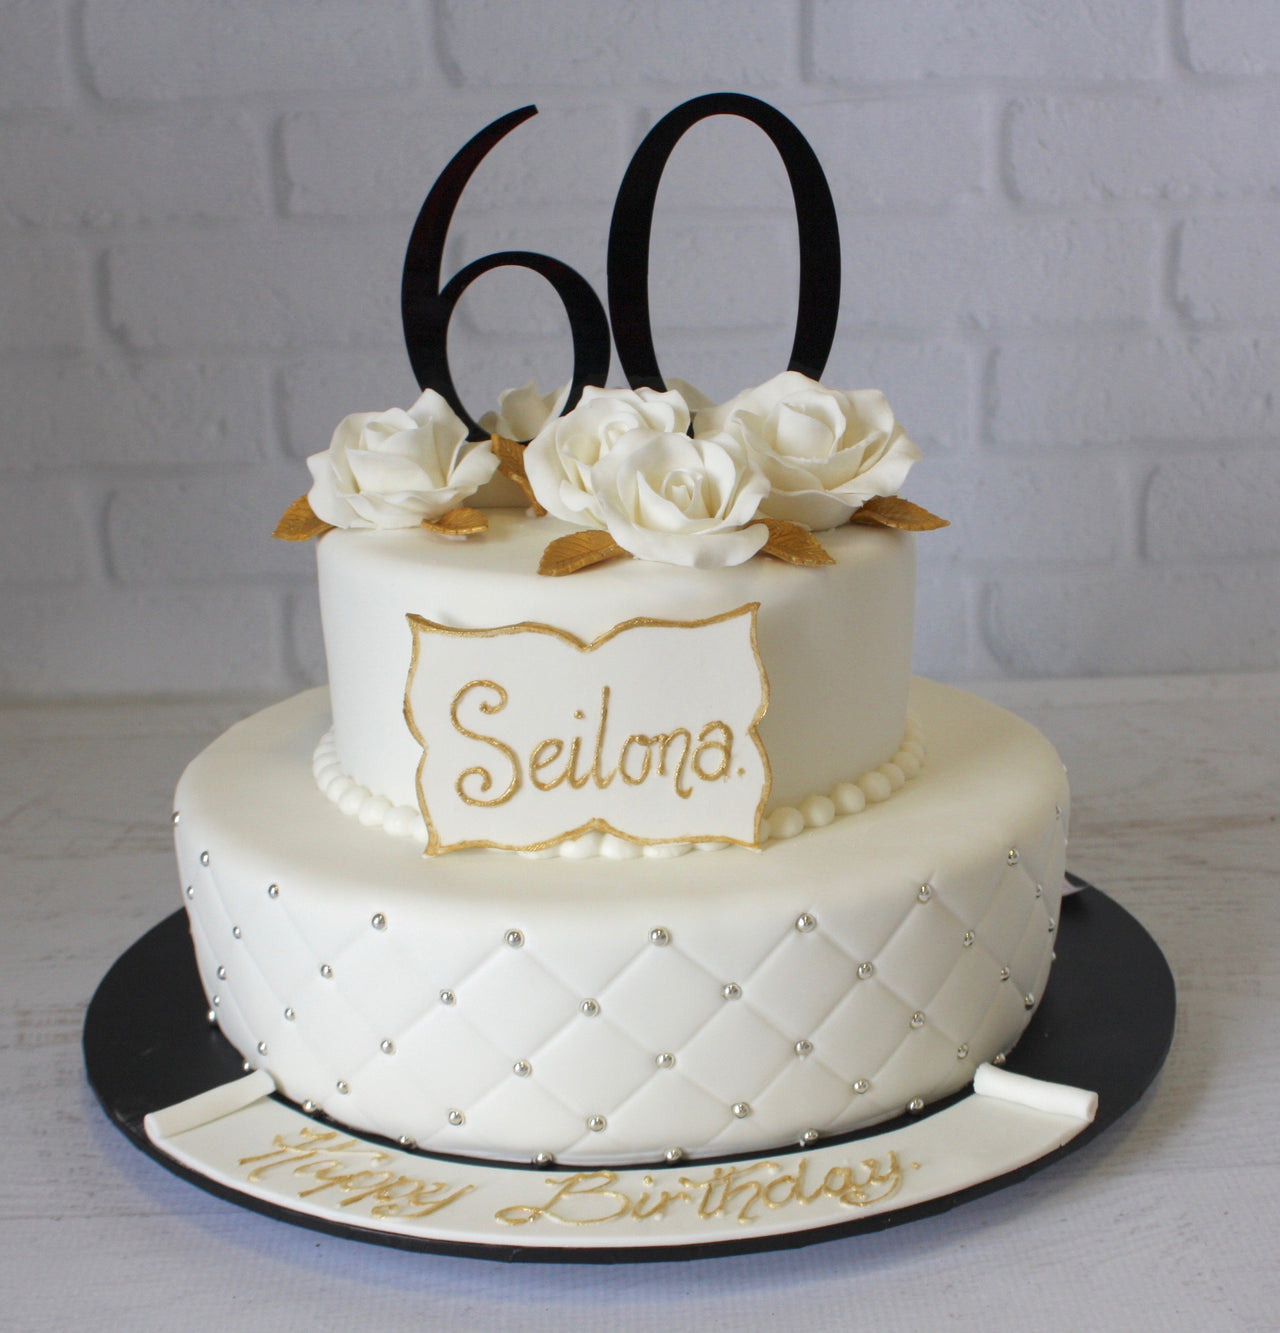 Celebration Cakes Cakes Cake Decorating Supplies Nz